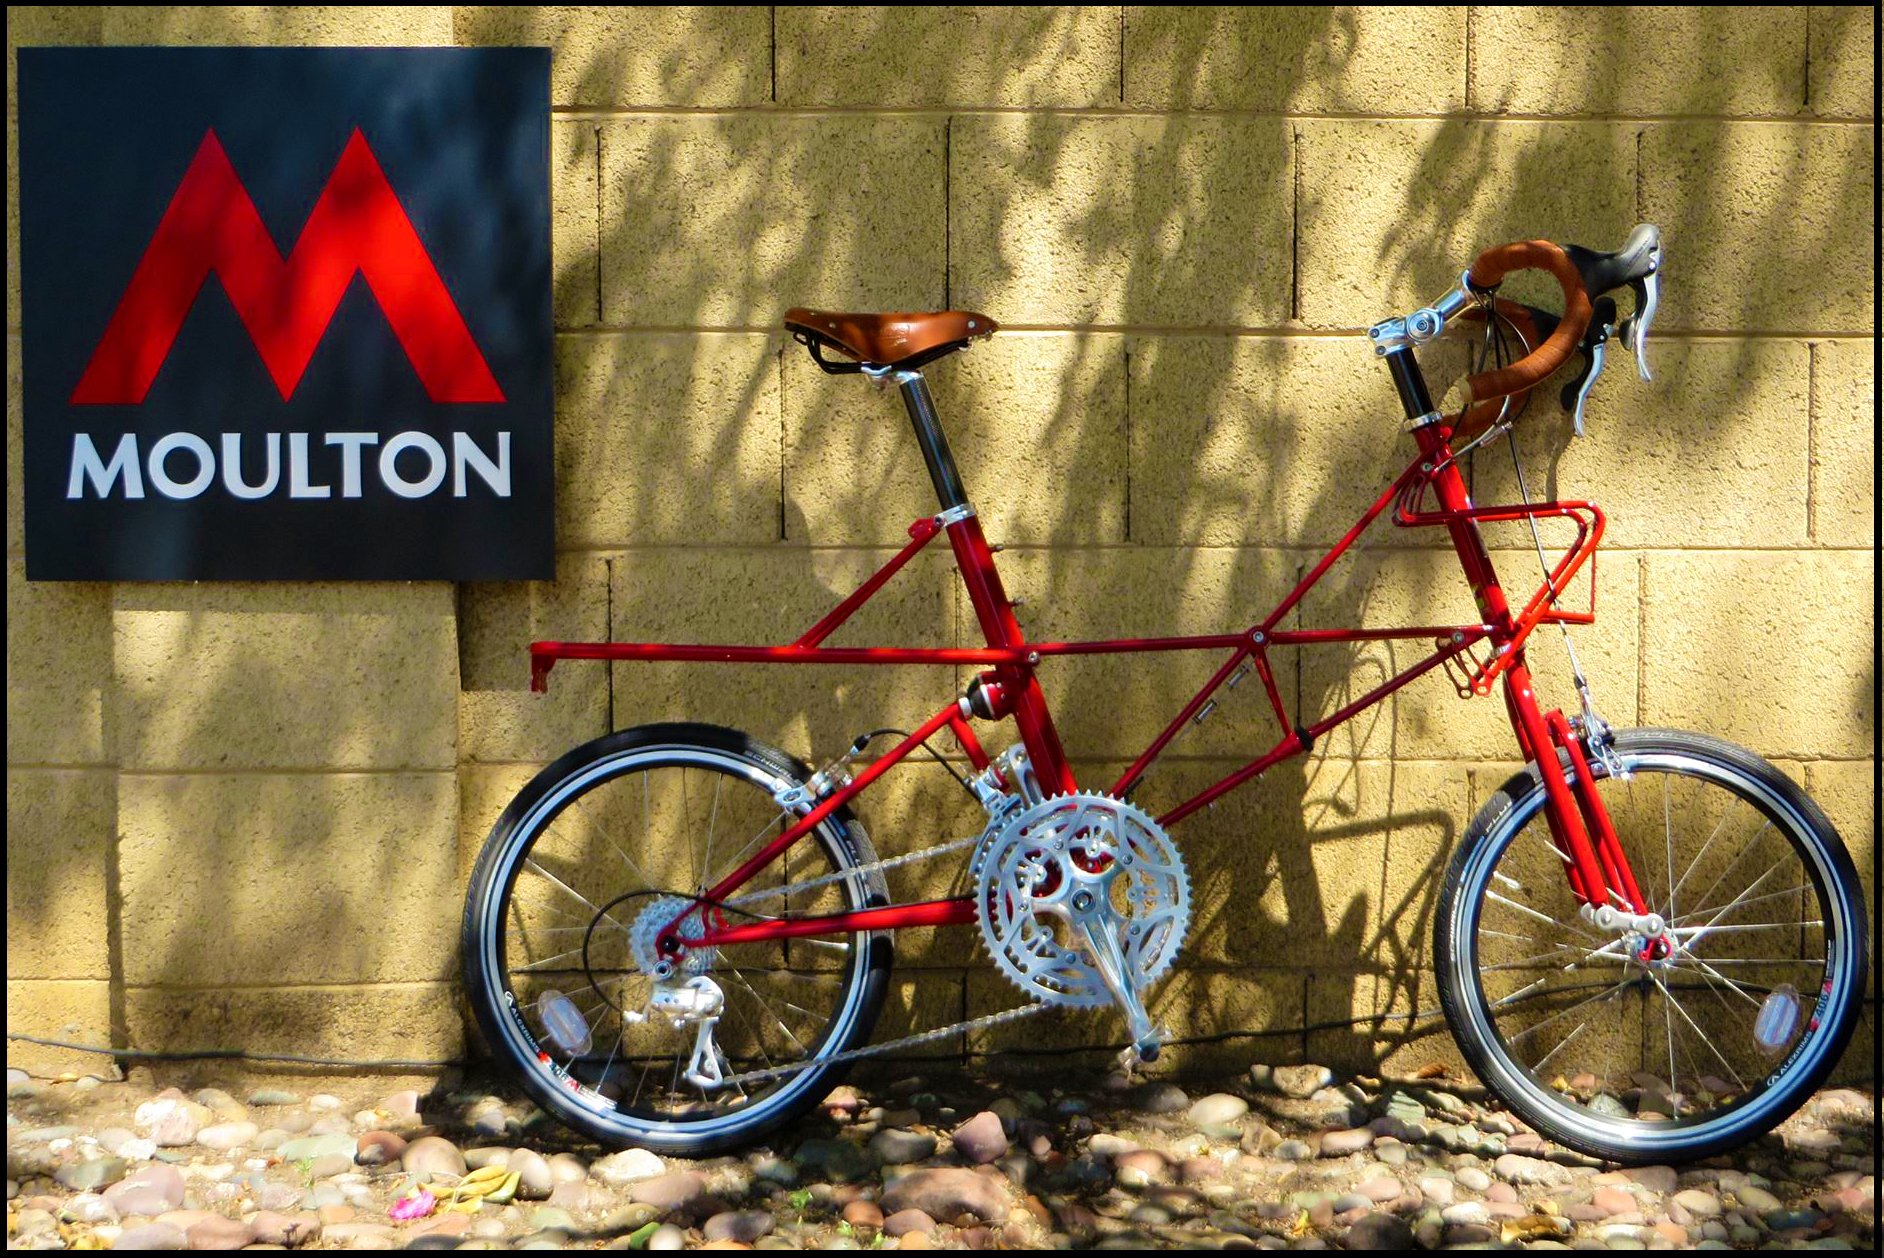 Why You Should Consider A Moulton For Your Next Bike